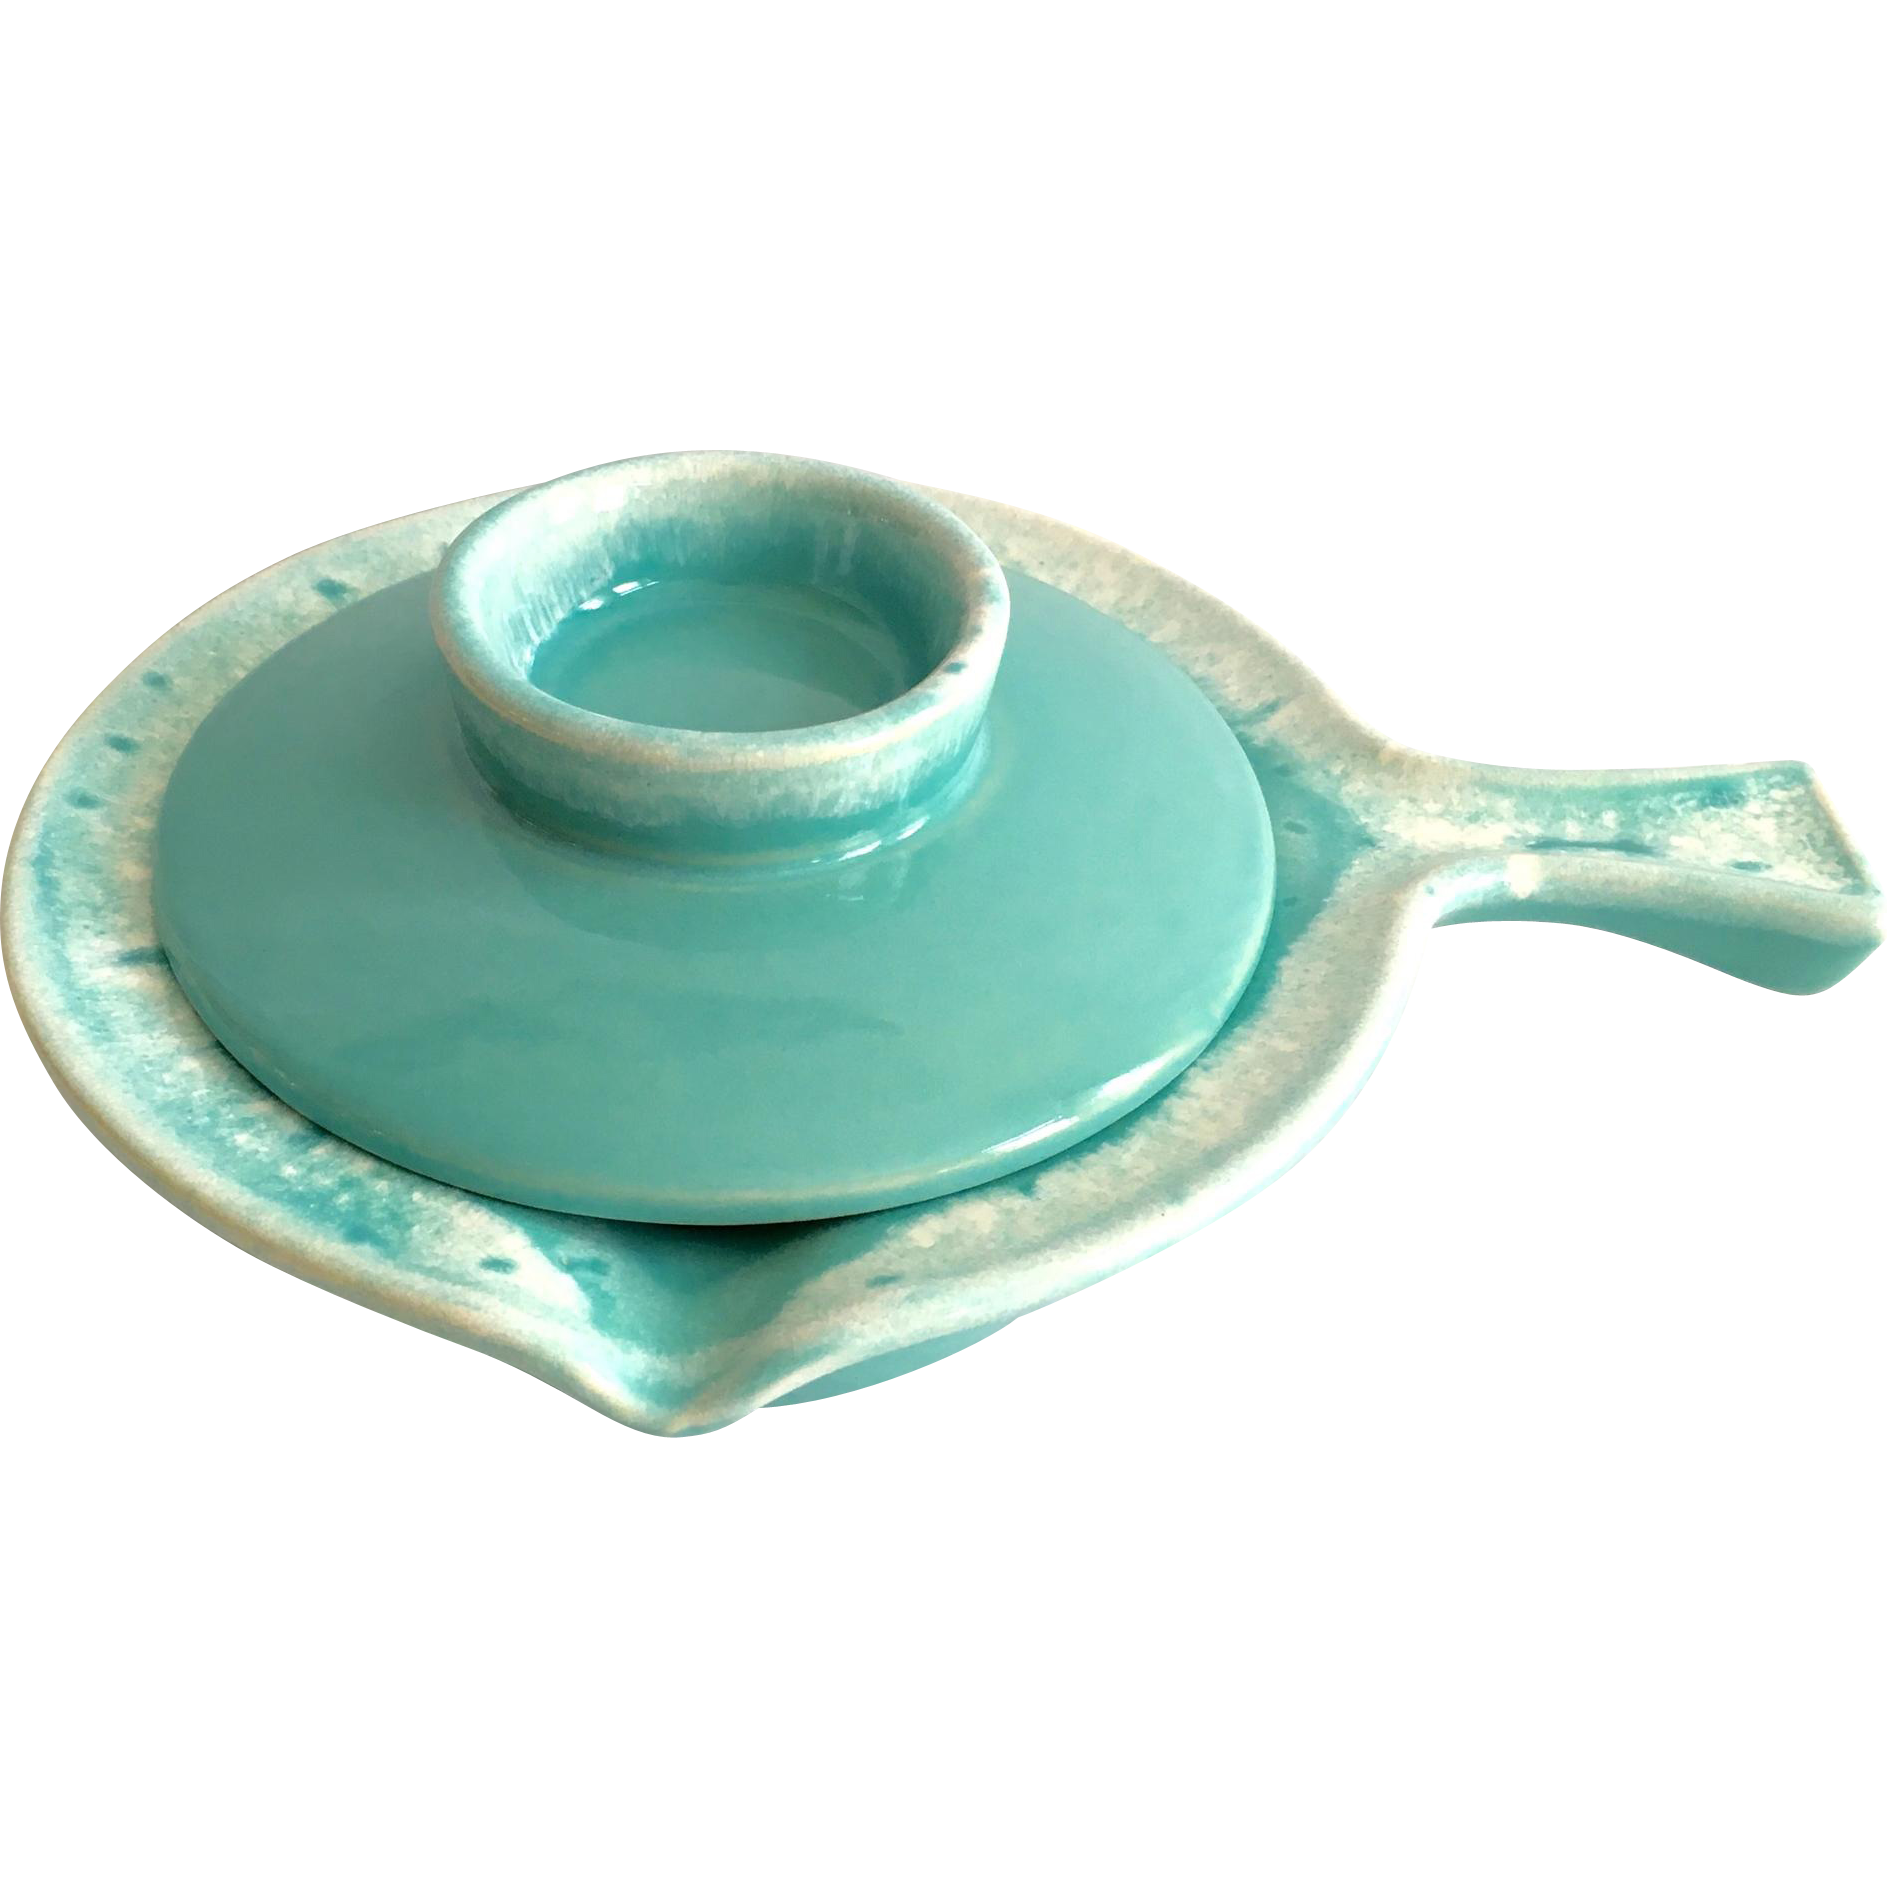 Hull Crestone Turquoise French Casserole With Cover